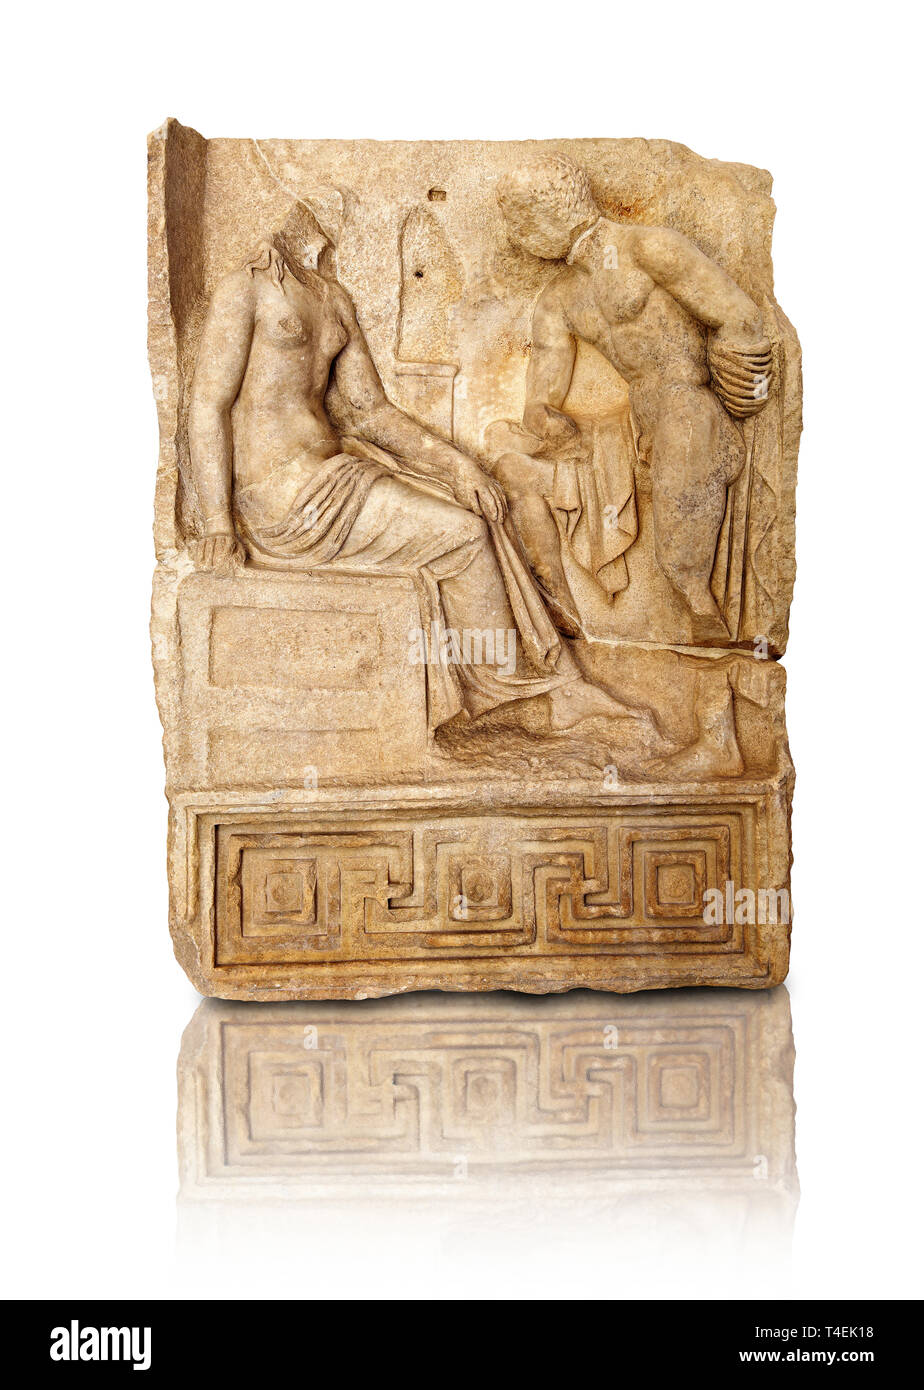 Roman temple freize relief sculptureof an unknown hero holding a sword gazeing at an unknown young heroine. Aphrodisias Museum, Aphrodisias, Turkey. - Stock Image